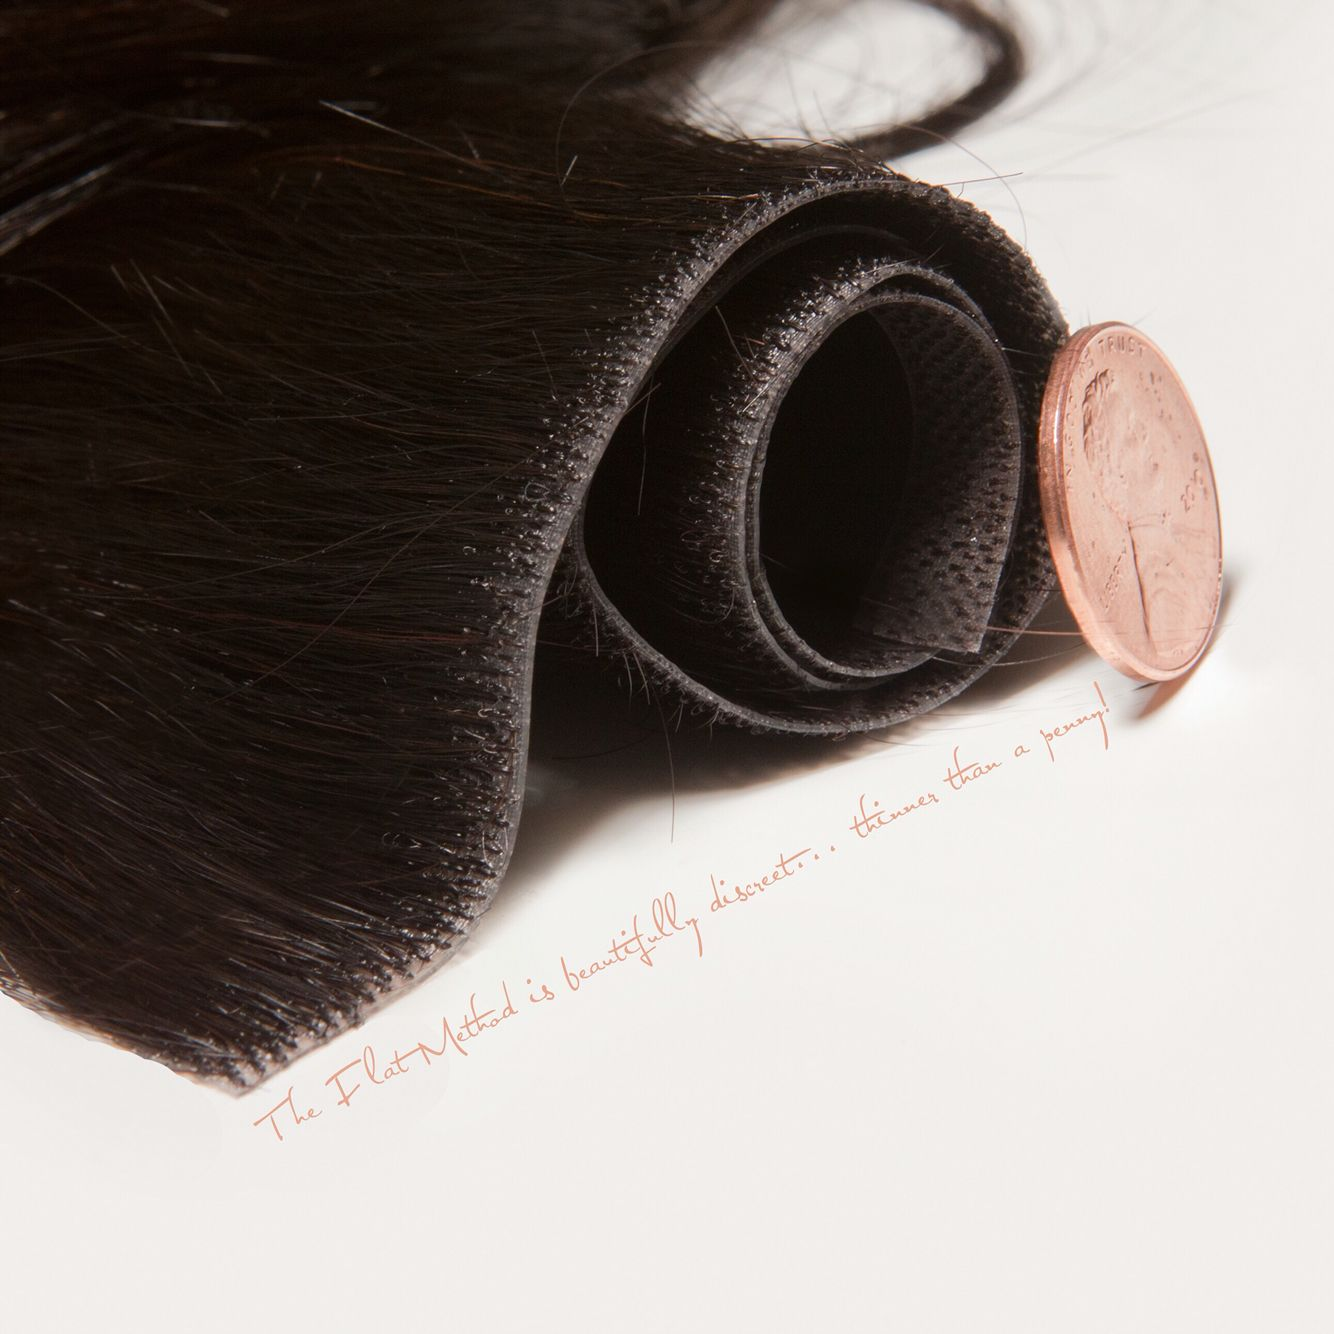 Thinner than a penny best hair extensions in miami beach florida best hair extensions in miami beach florida with new inventory of pmusecretfo Image collections